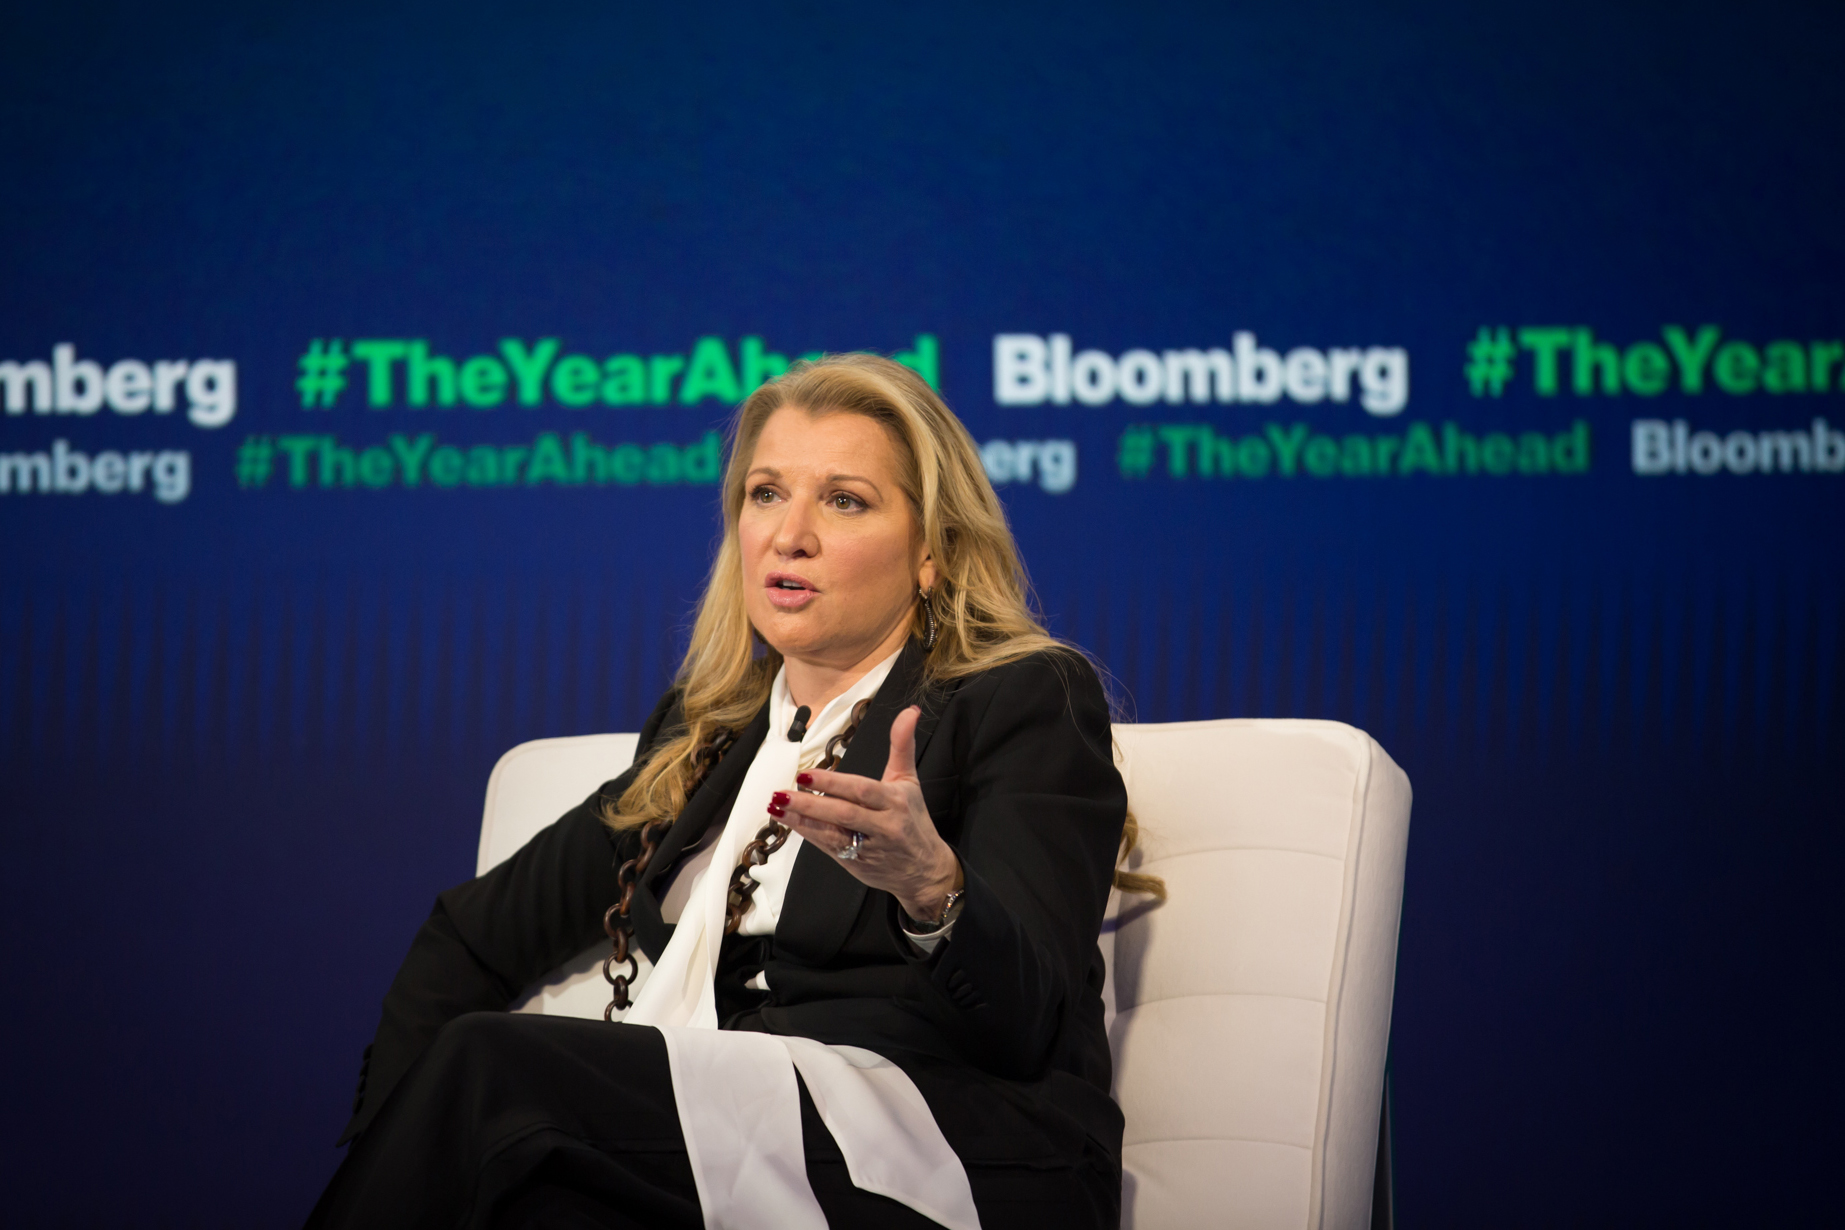 Weight Watchers CEO Mindy Grossman speaks on-stage at a Bloomberg event